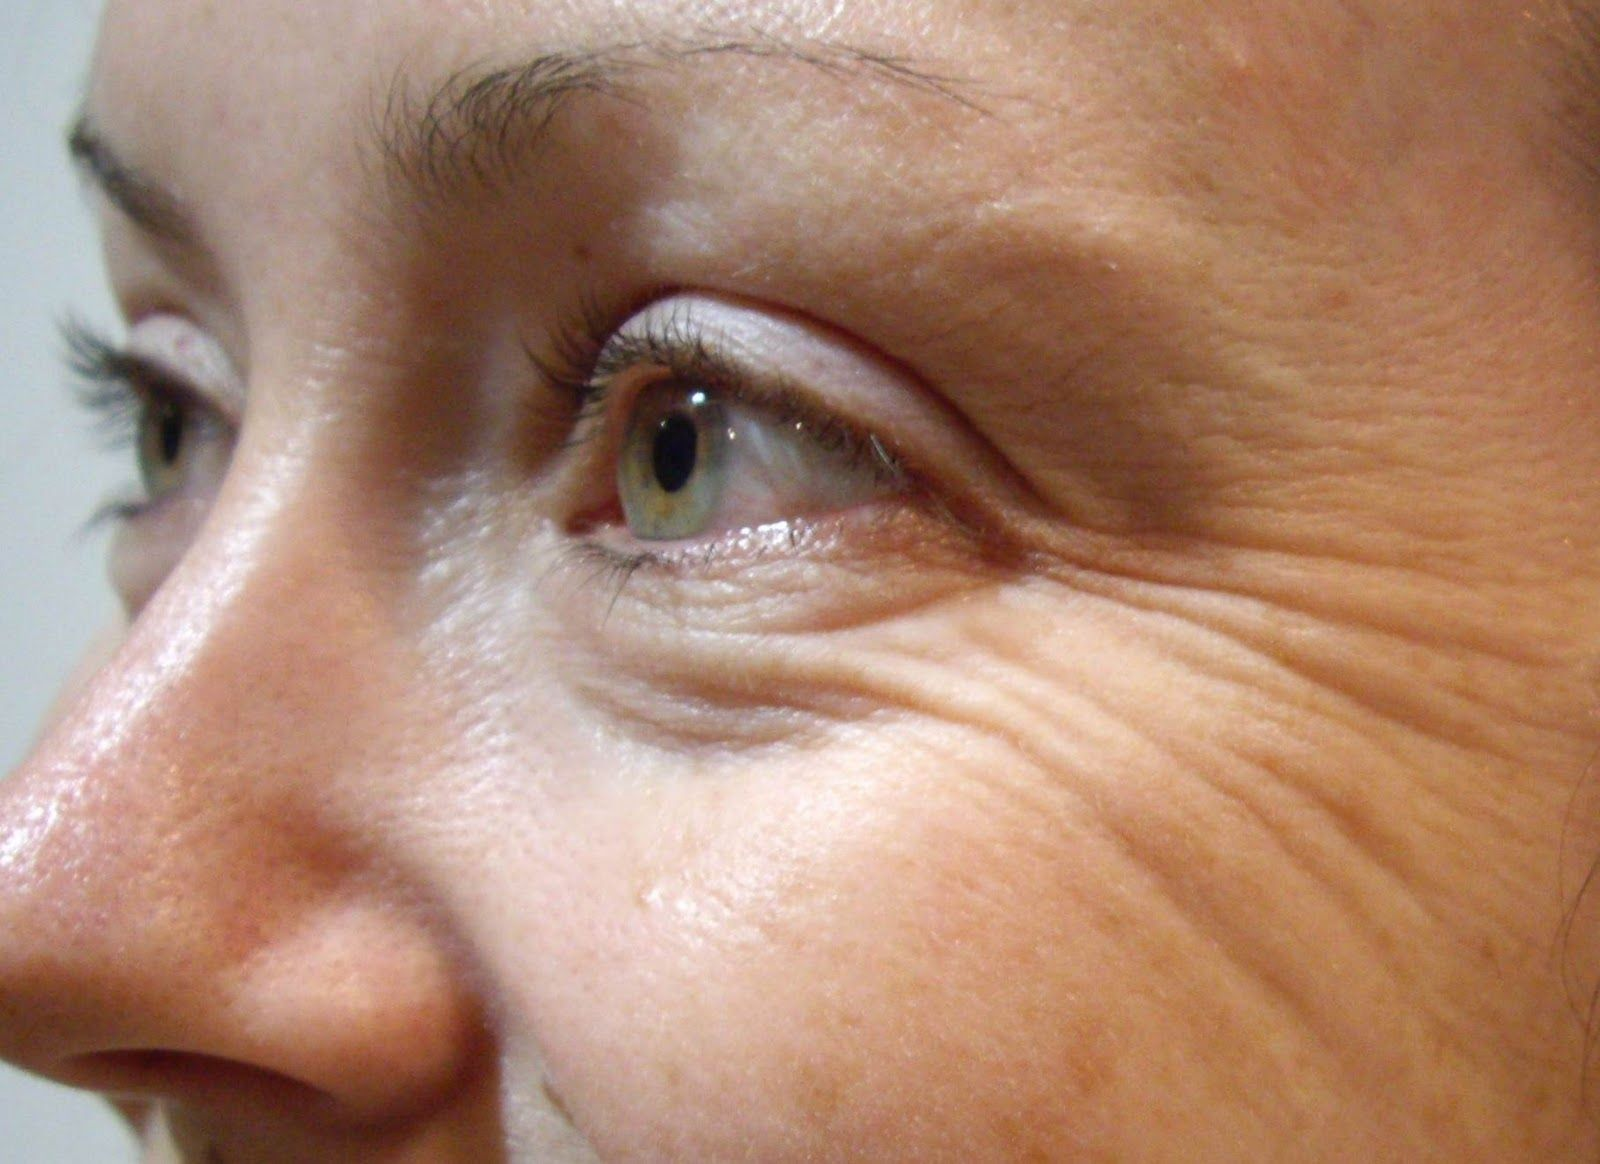 Pictures of Wrinkly Skin Face - #rock-cafe